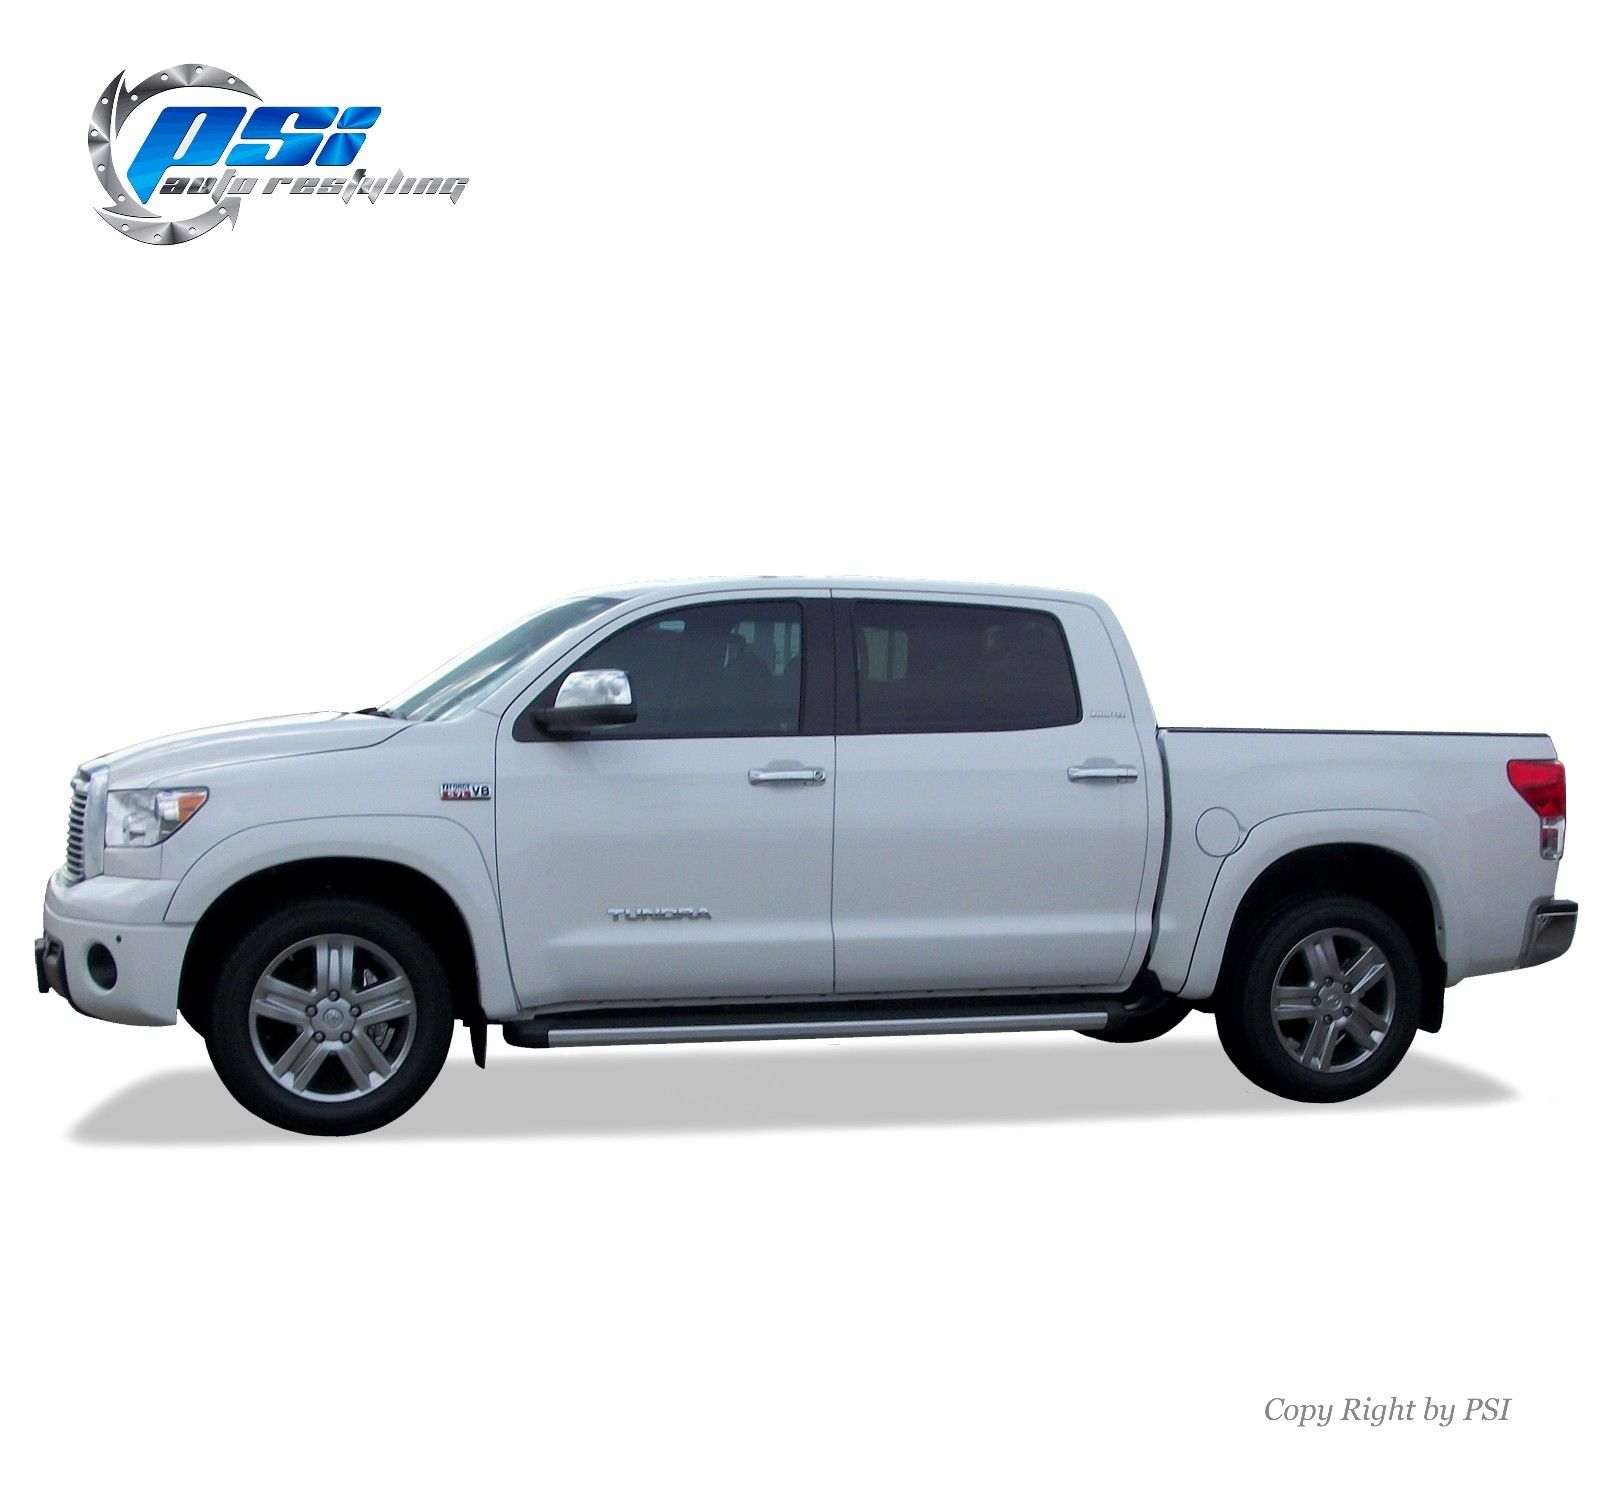 Black Paintable Oe Style Fender Flares Toyota Tundra 07 13 Fits W Factory Flaps 2018 2019 Mycarboard Com